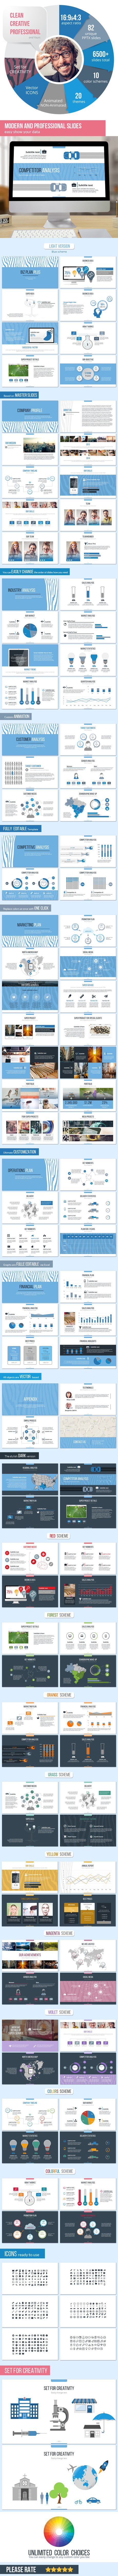 Business Plan+ PowerPoint Presentation Template - Pitch Deck PowerPoint Templates